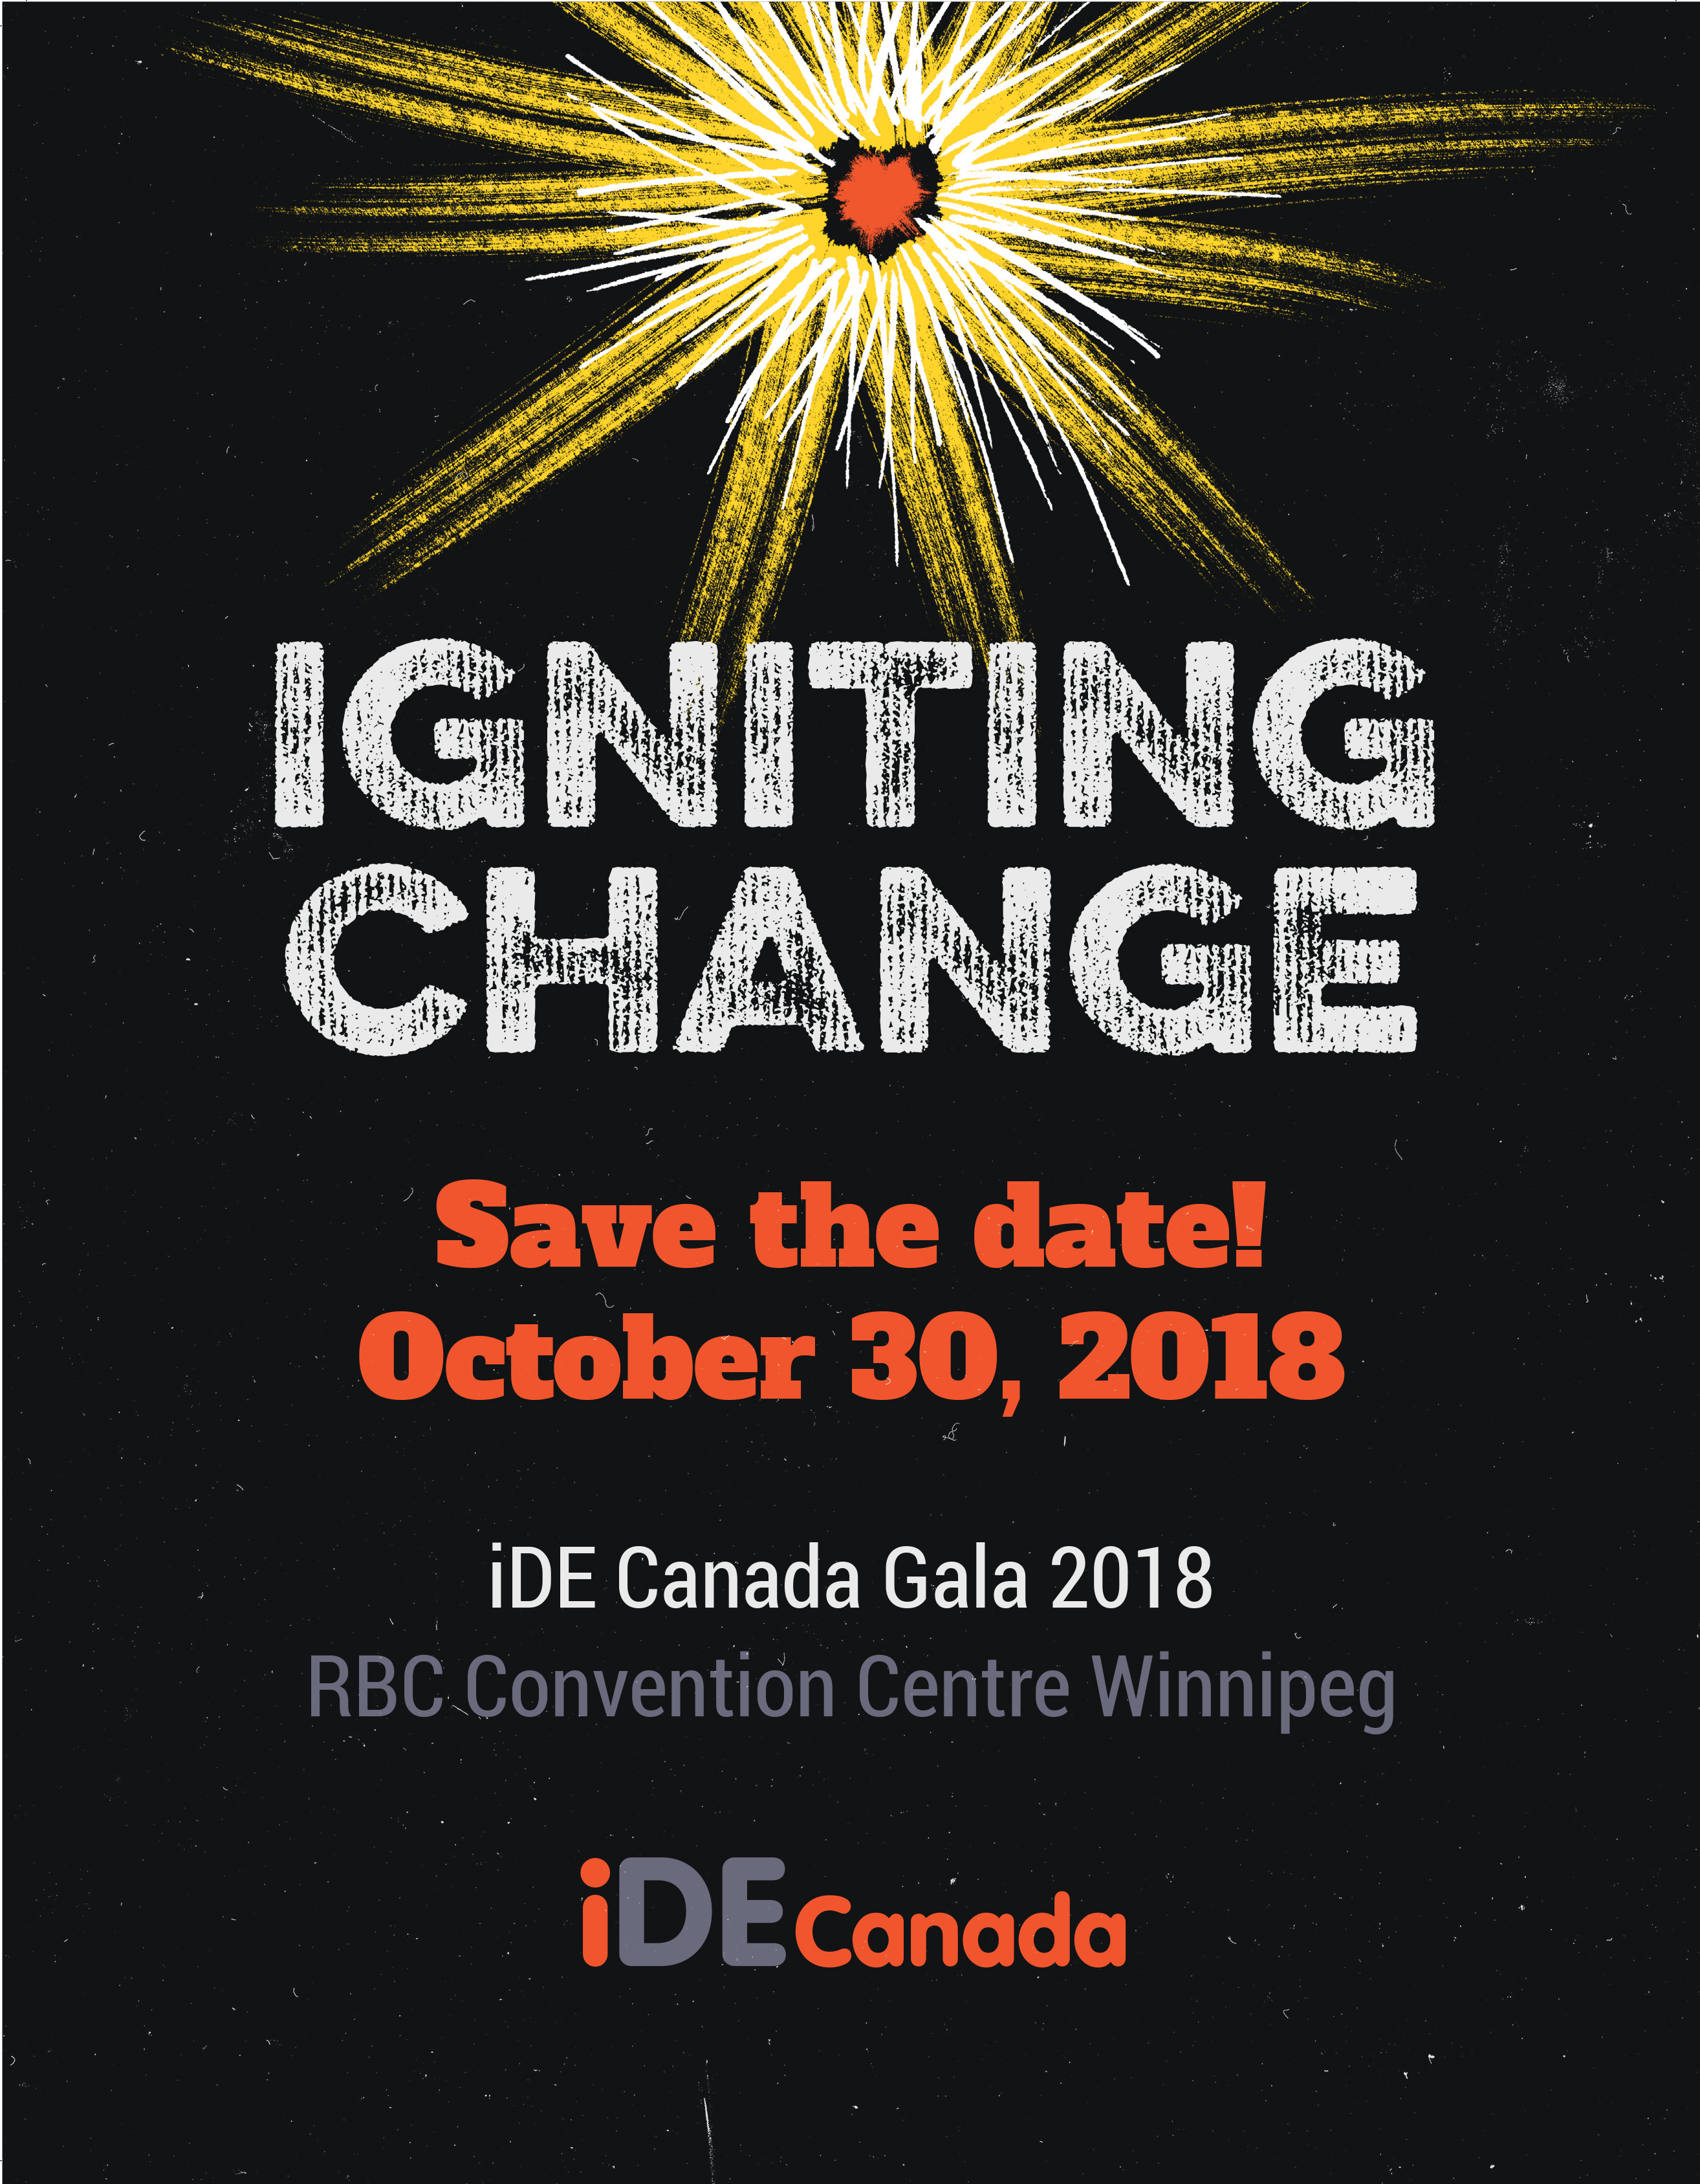 Save the date! iDE Canada Annual Gala | October 30, 2018